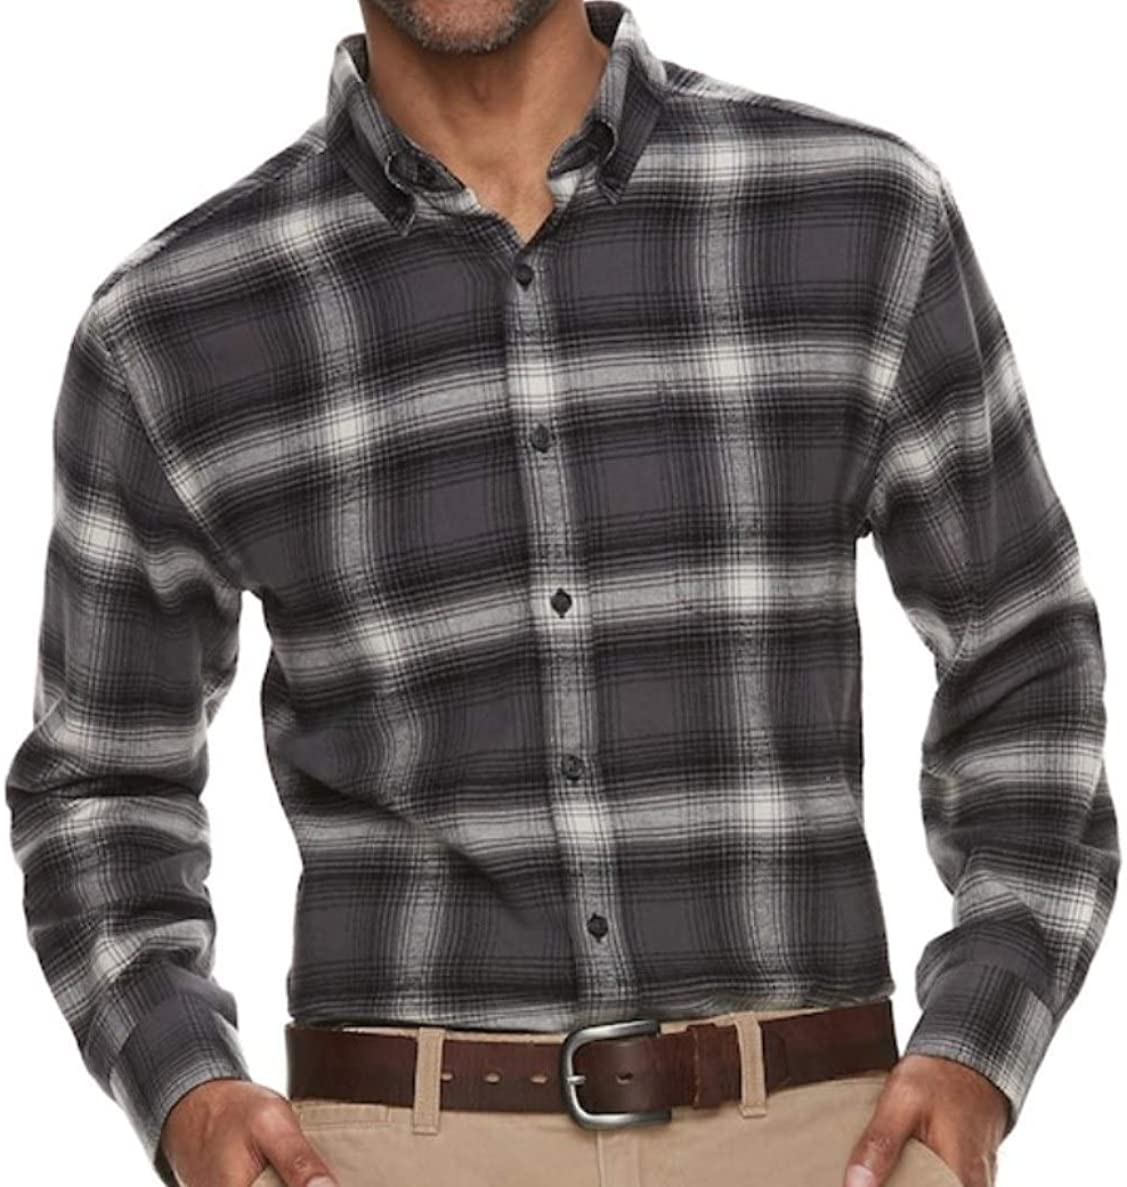 Mens Classic Fit Flannel Shirt Grey Gray Plaid Button Down Long Sleeves